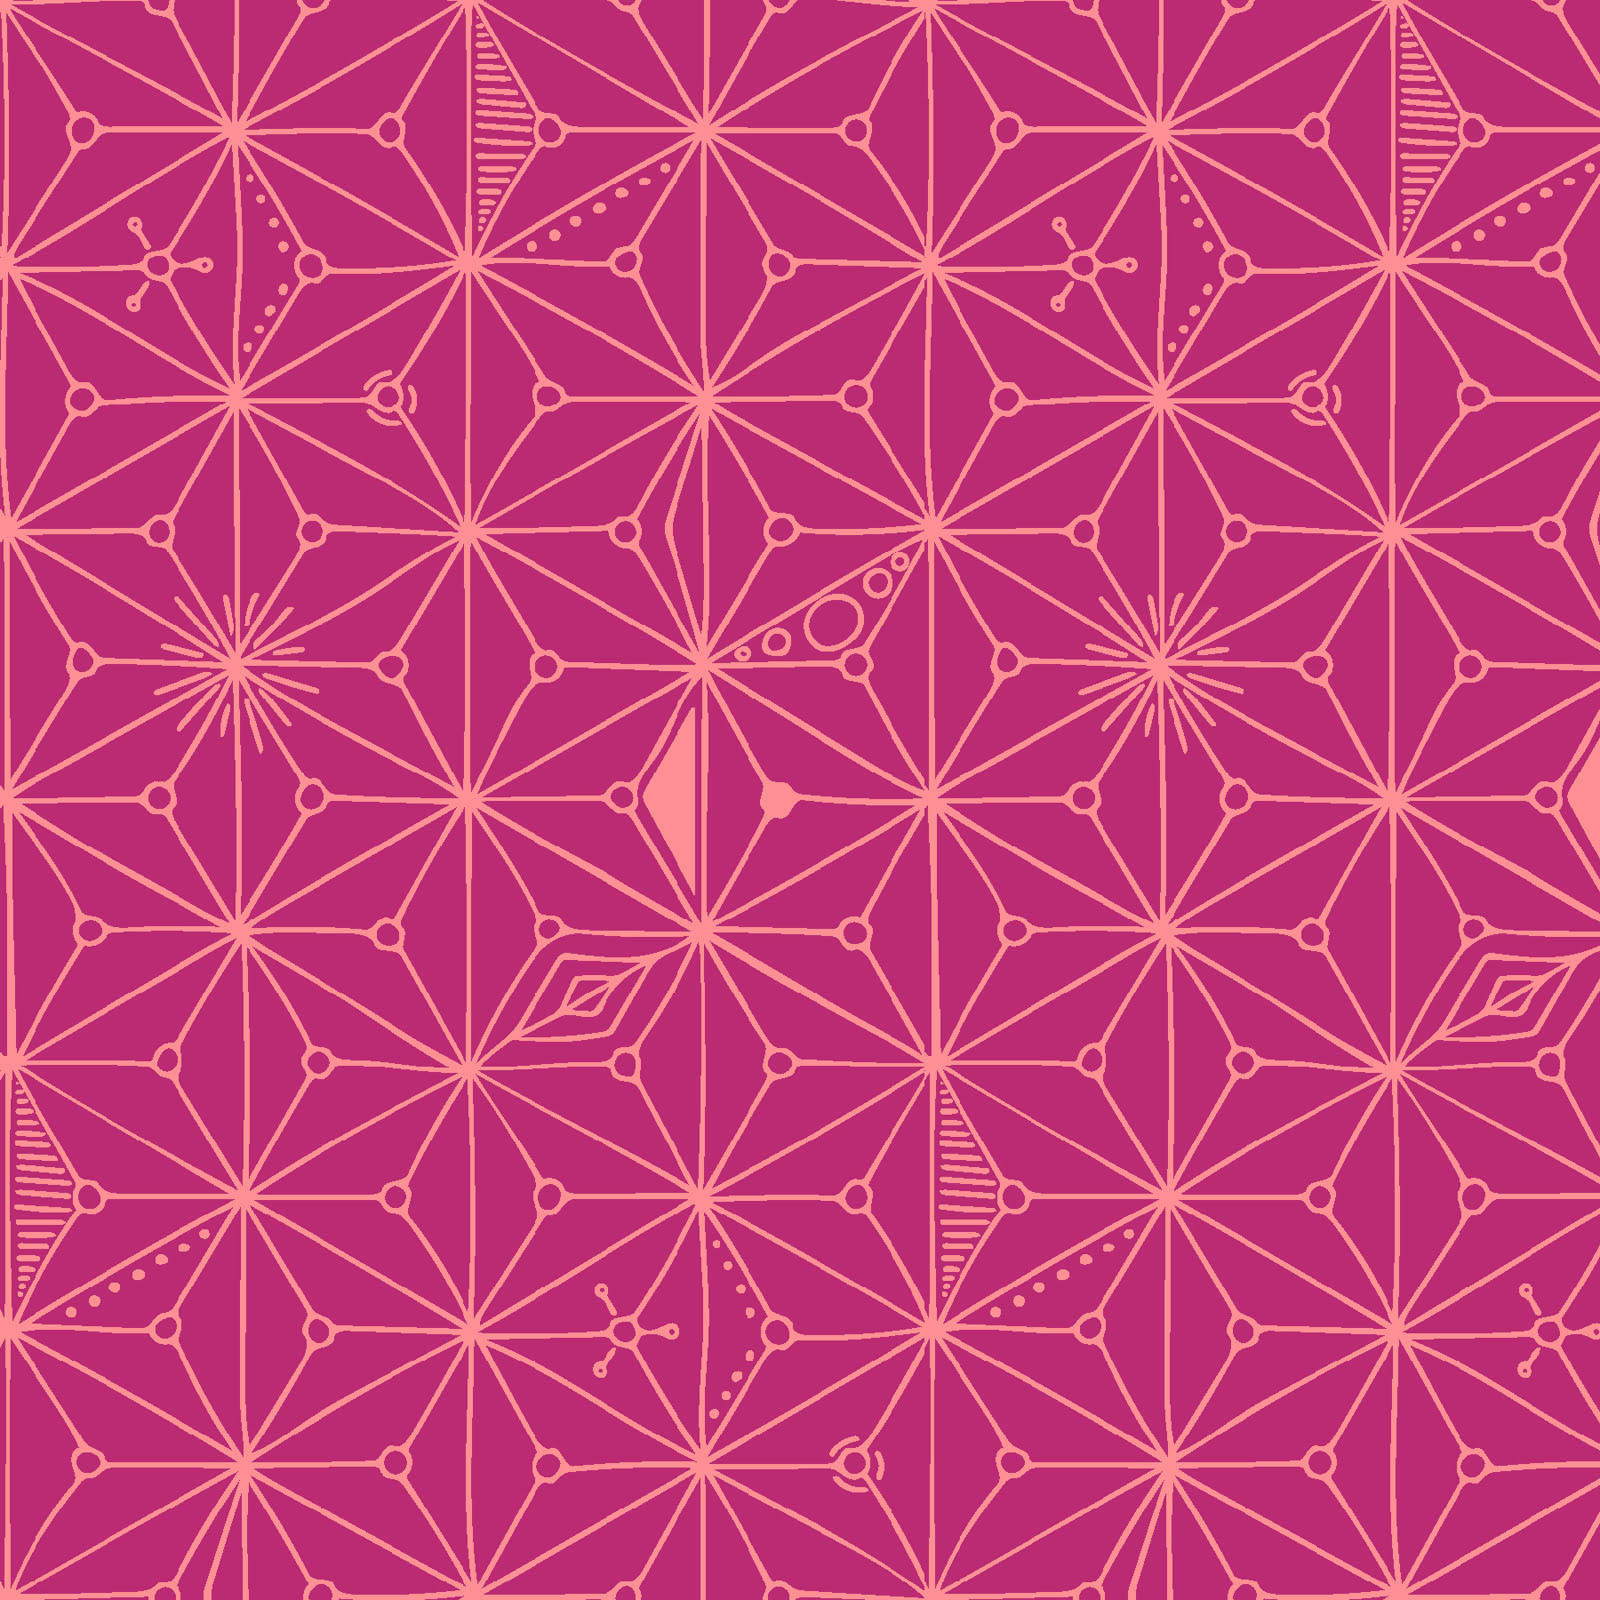 MAYWOOD MOONGATE, CONTINUUM Pink (Geometric), per cm or $18/m